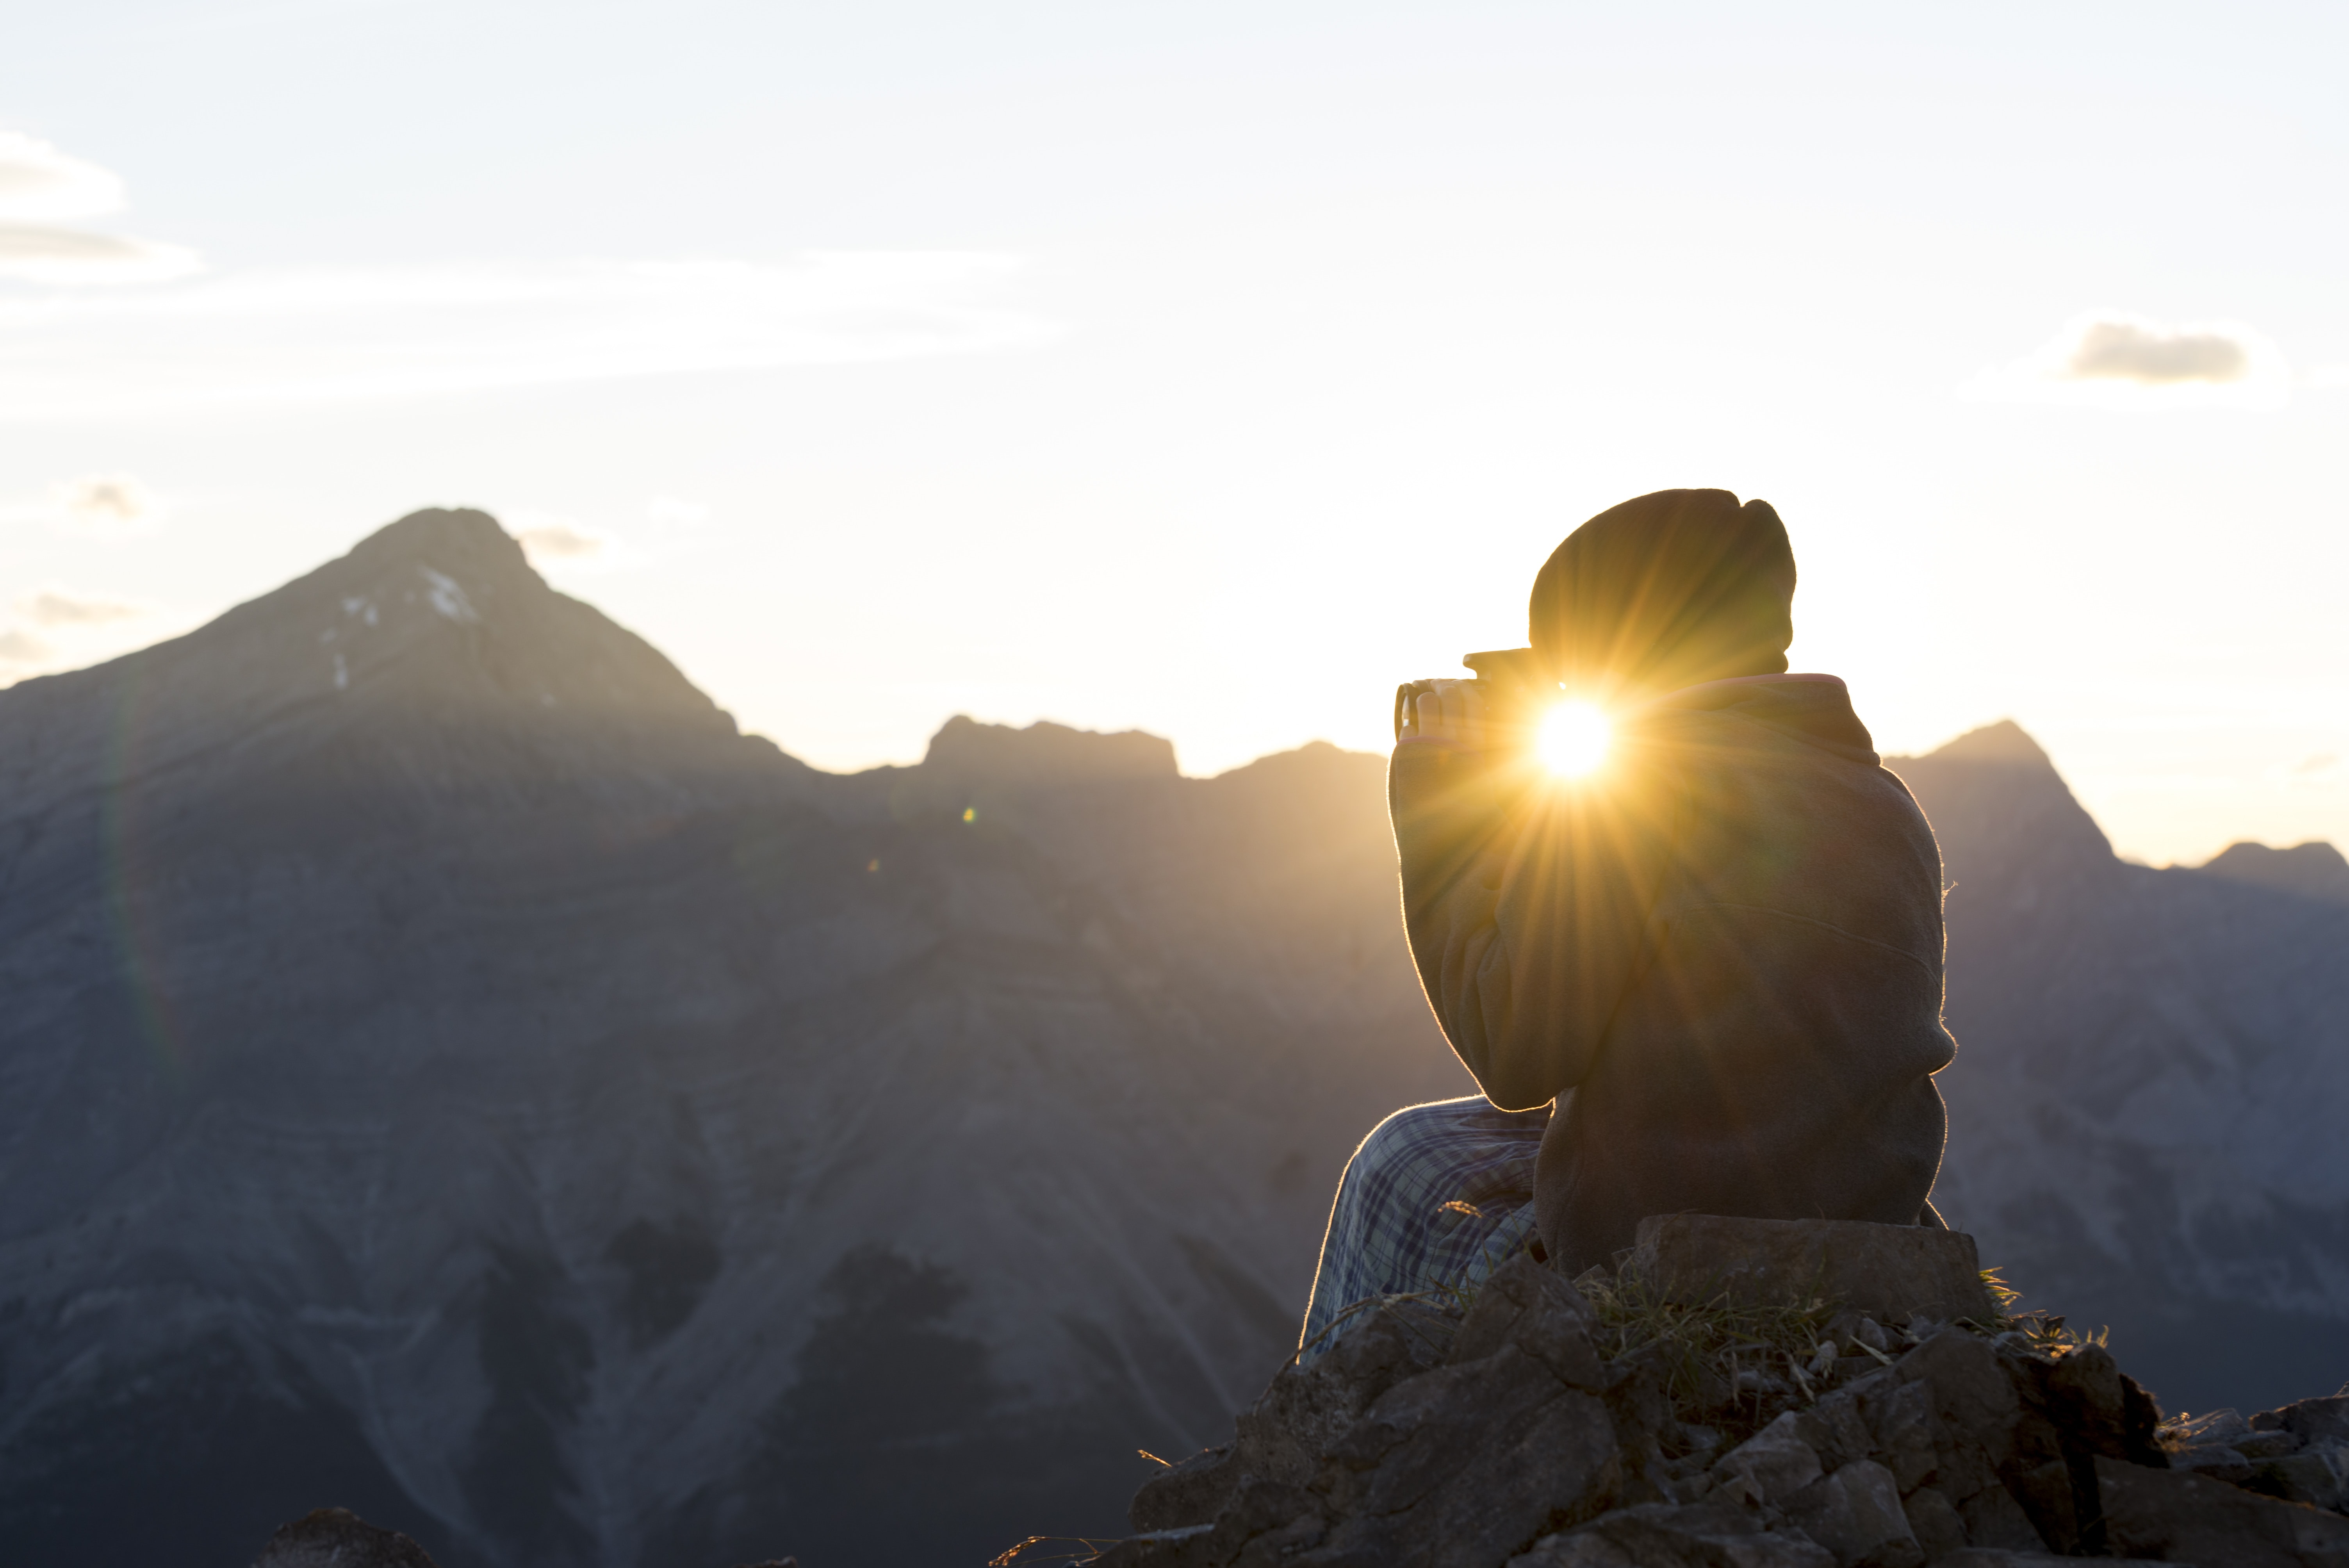 silhouette photography of person seating on rock in front of mountains